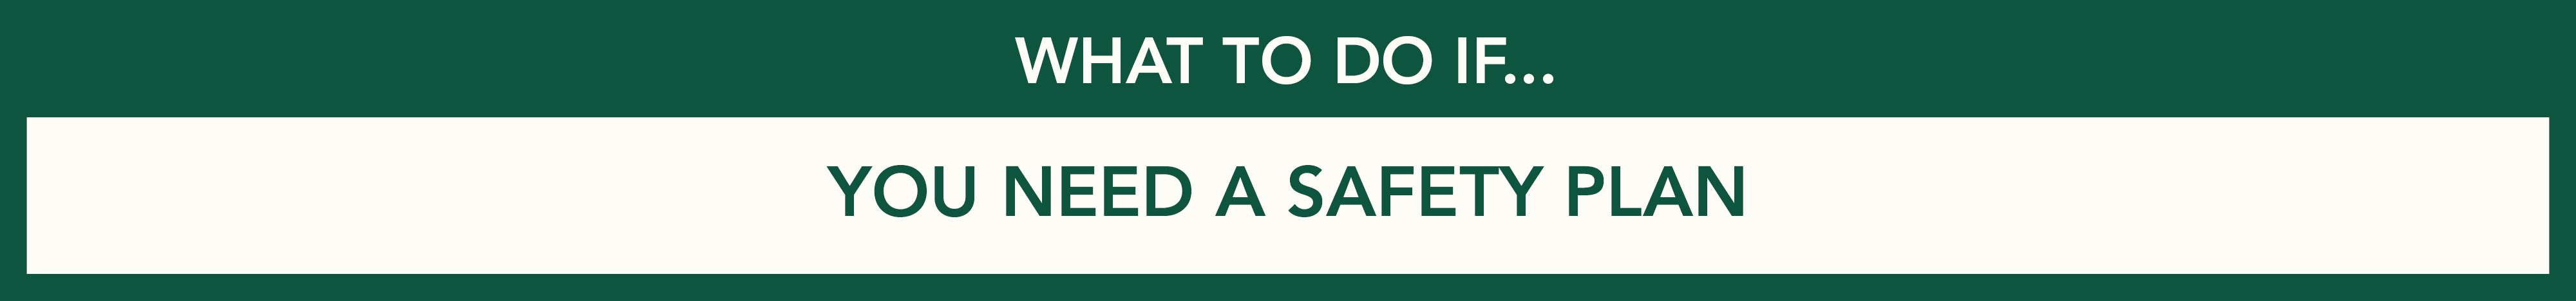 What to do if you need a safety plan.